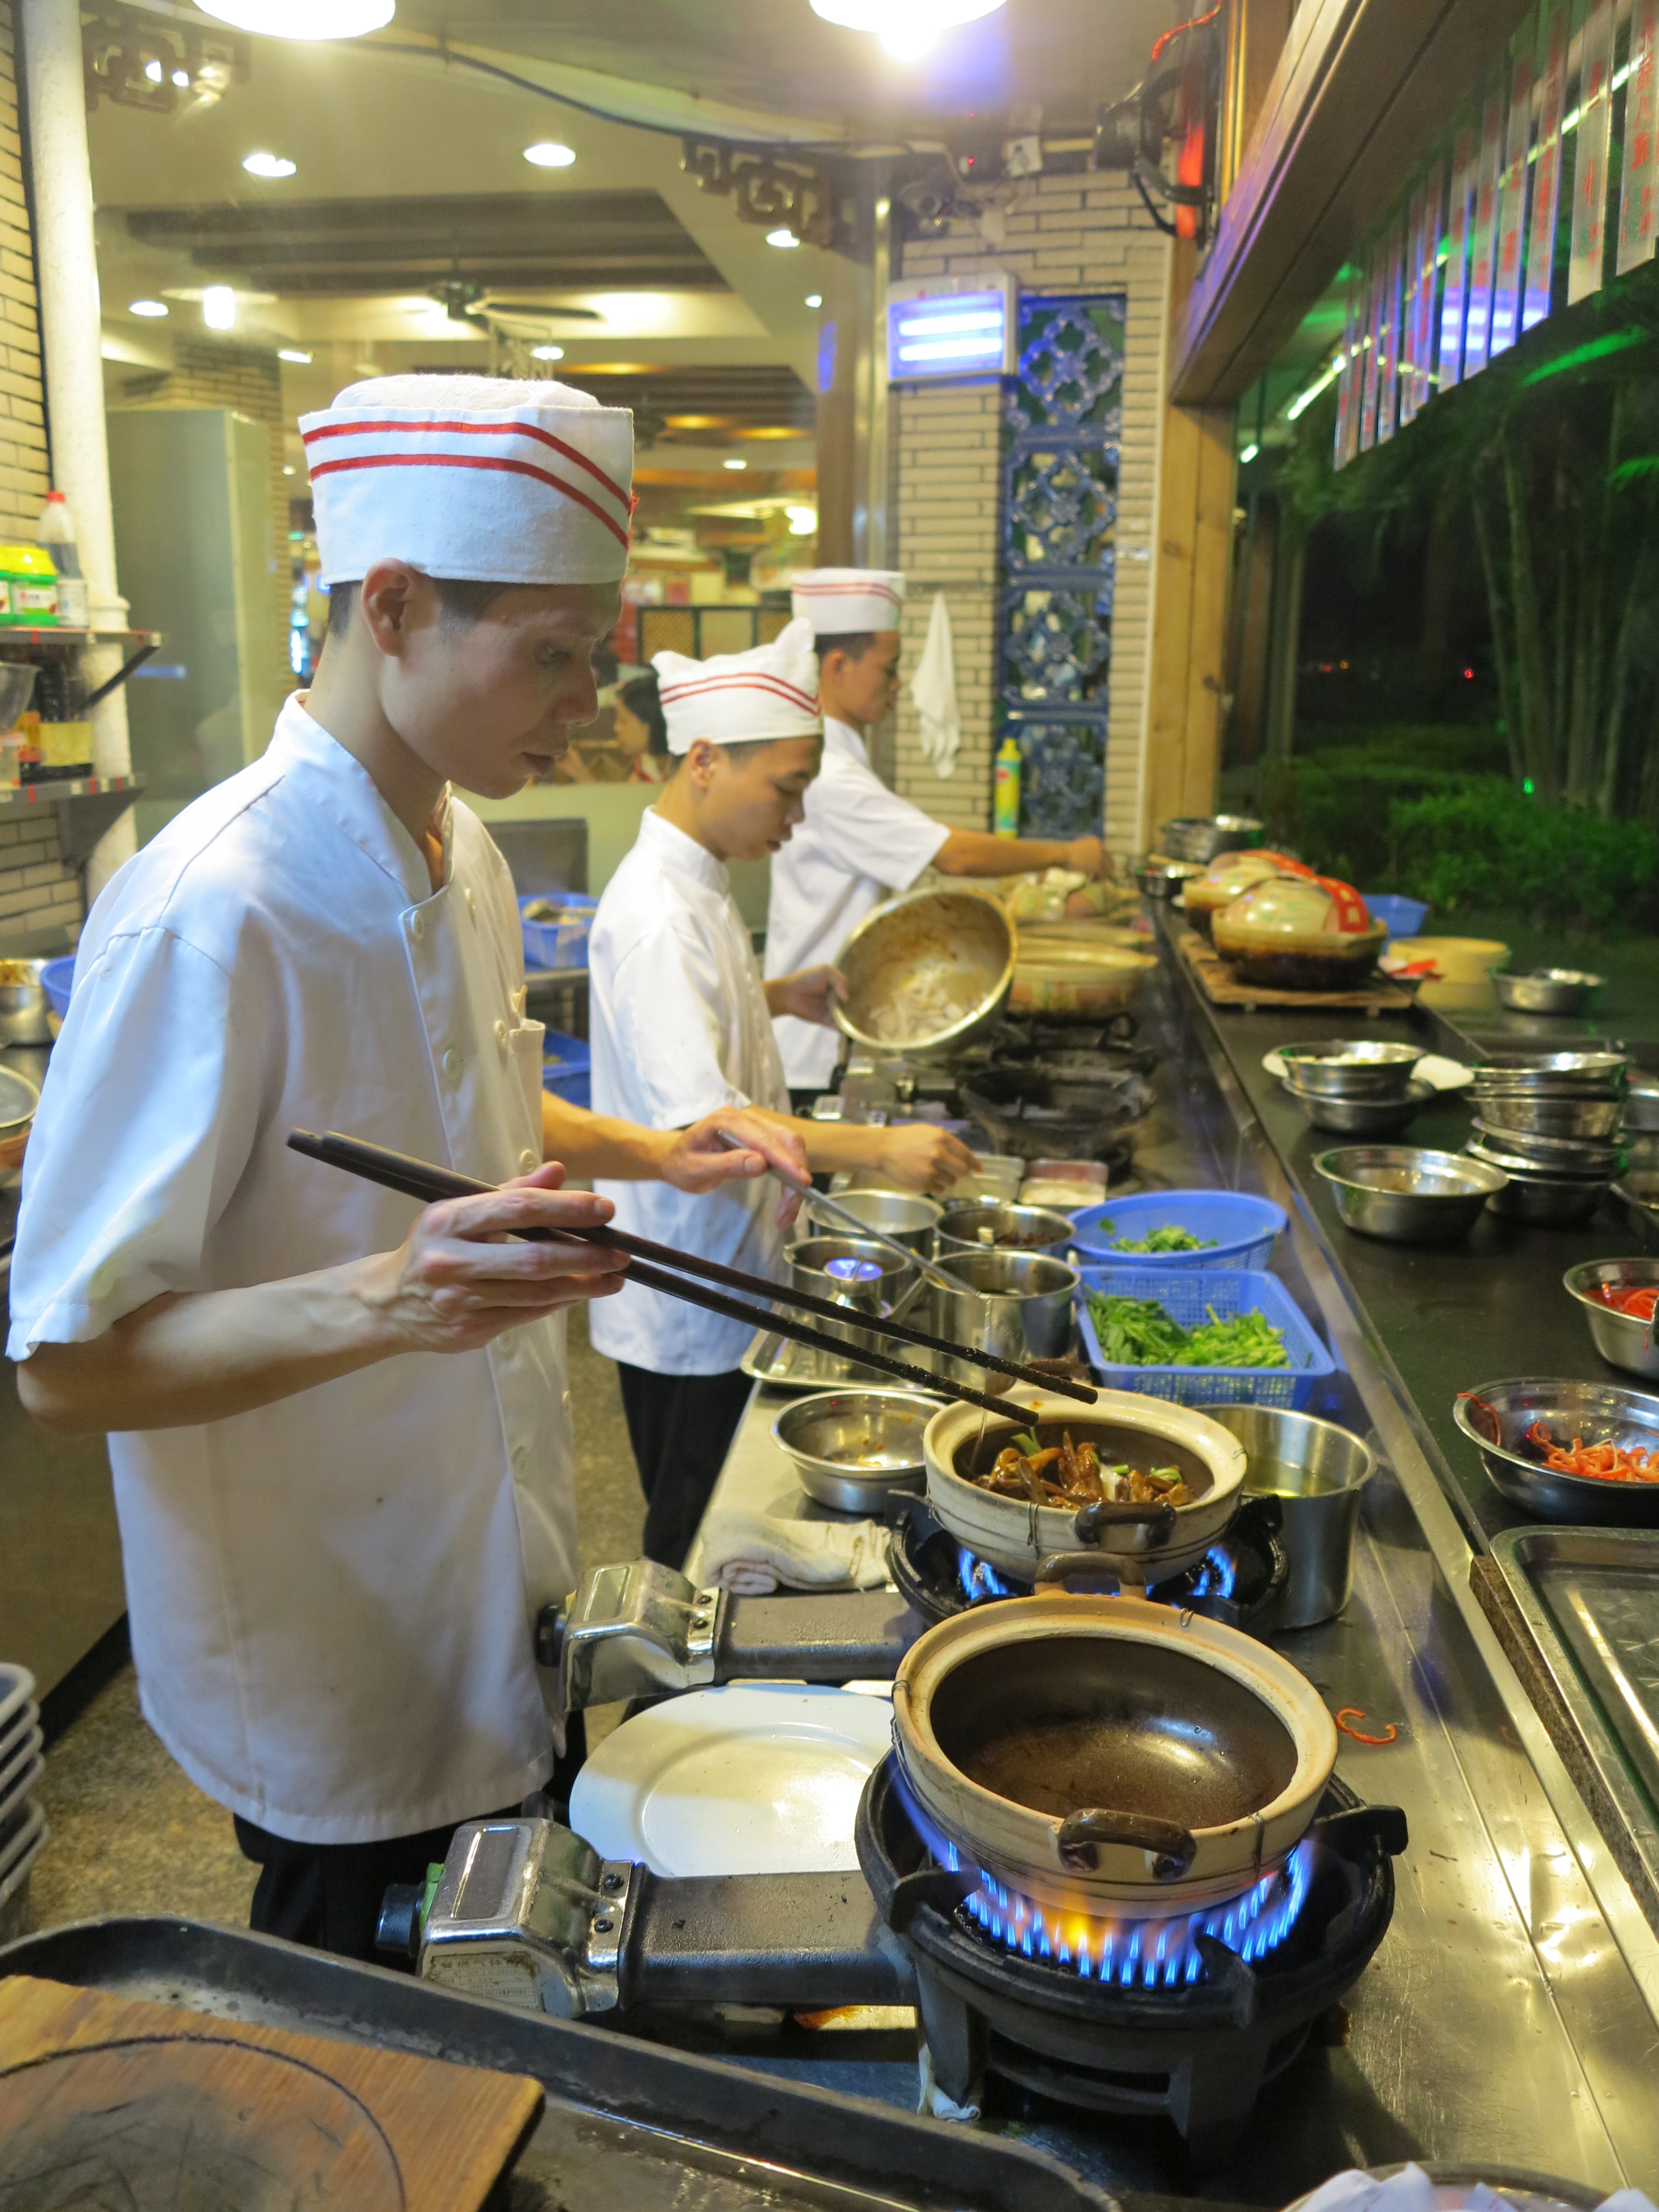 restaurant open kitchen concept. If You Want To Be Even More Involved Can Stand And Watch Them Cook  Entire Menu. They Have An Open Kitchen Concept. Whereas Most Restaurants Restaurant Concept